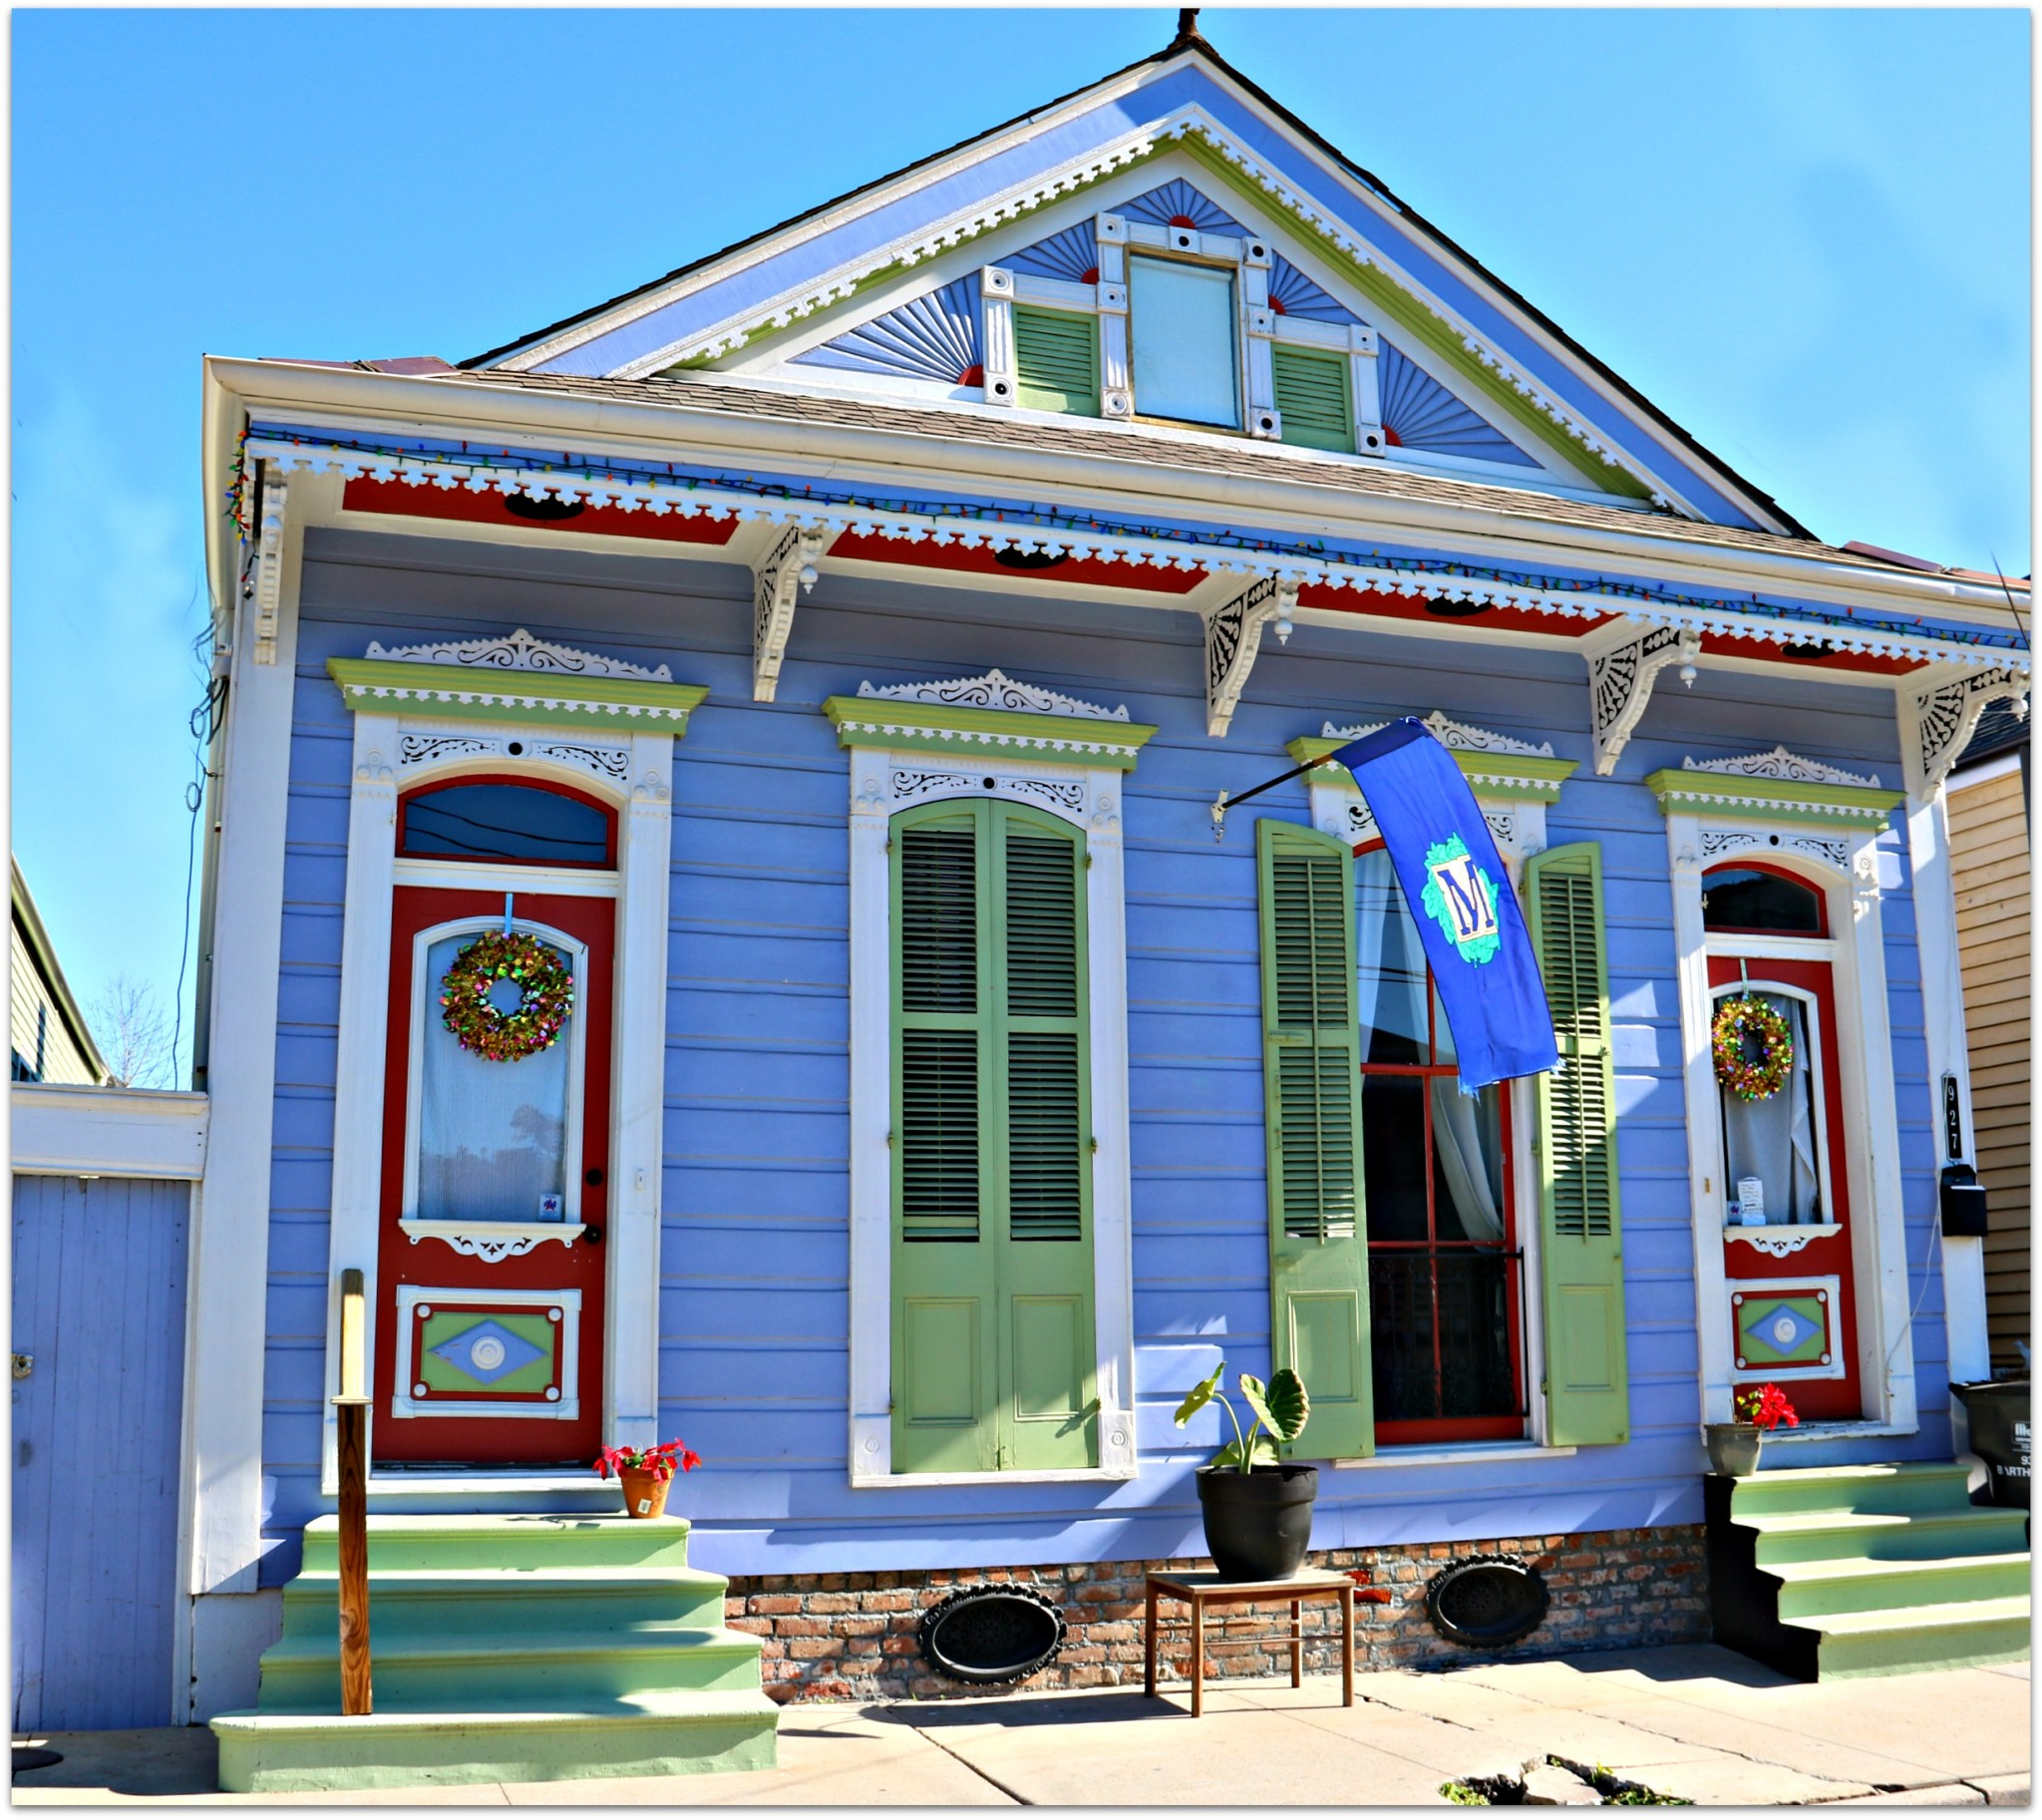 Bywater Colorful Home in New Orleans